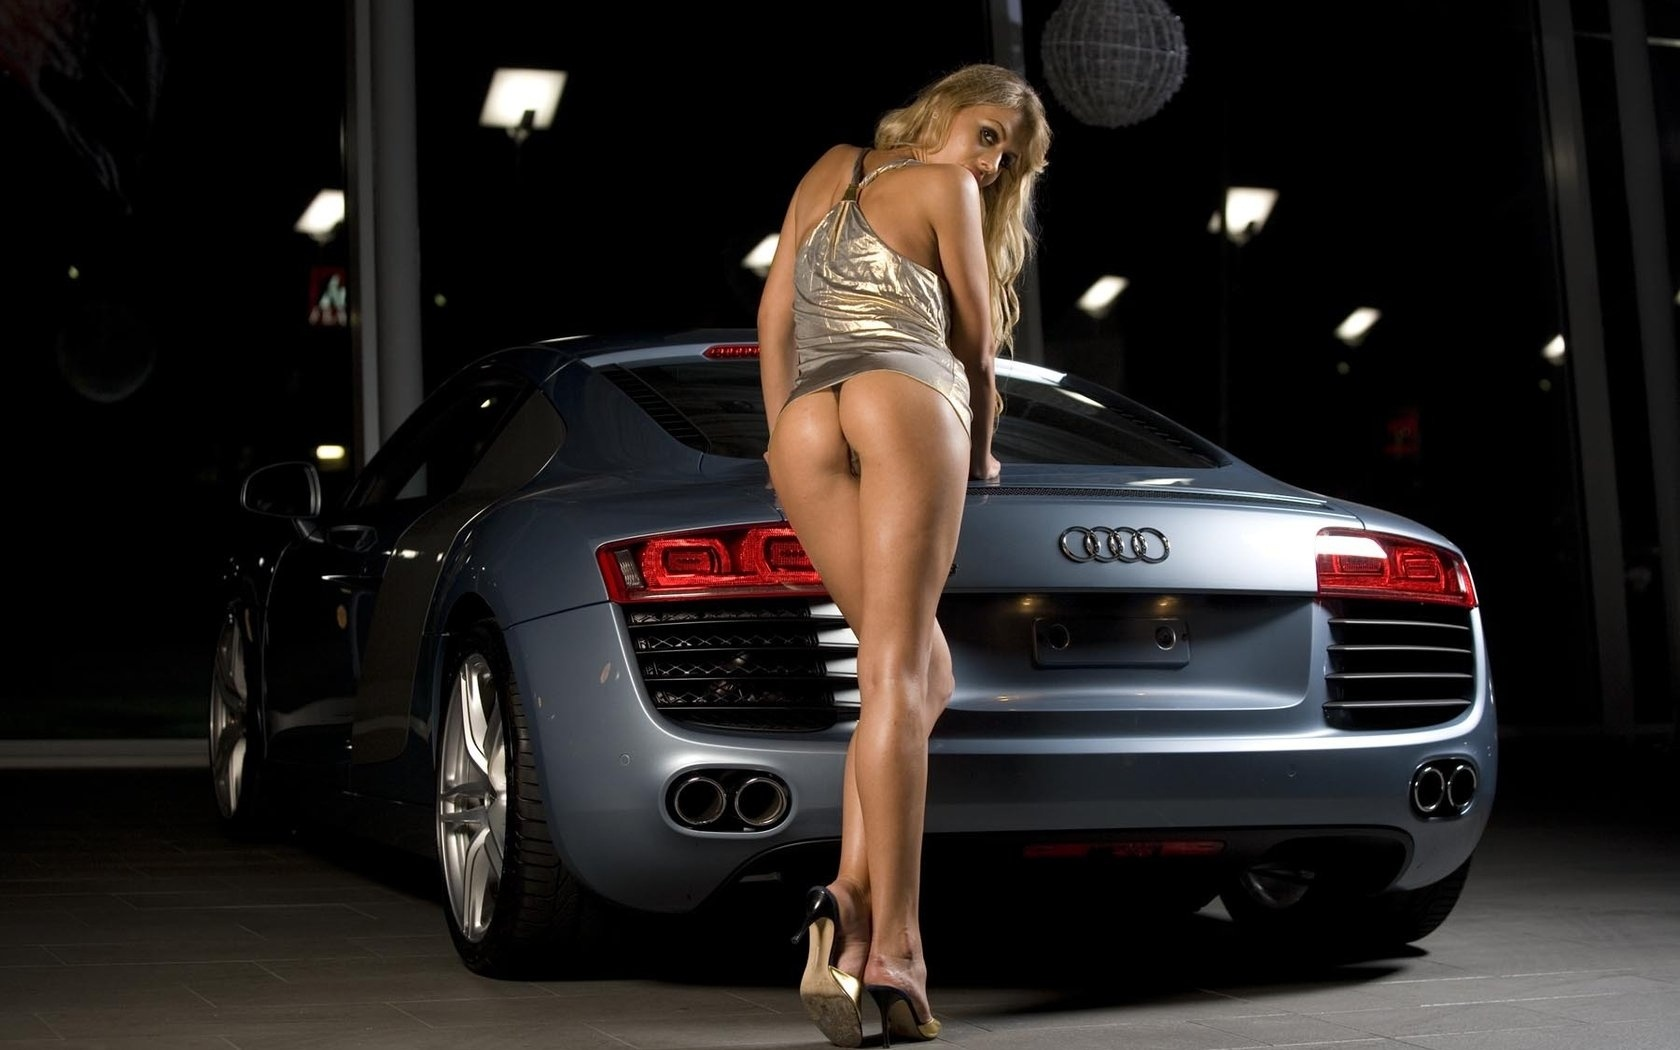 Hot cars and naked women